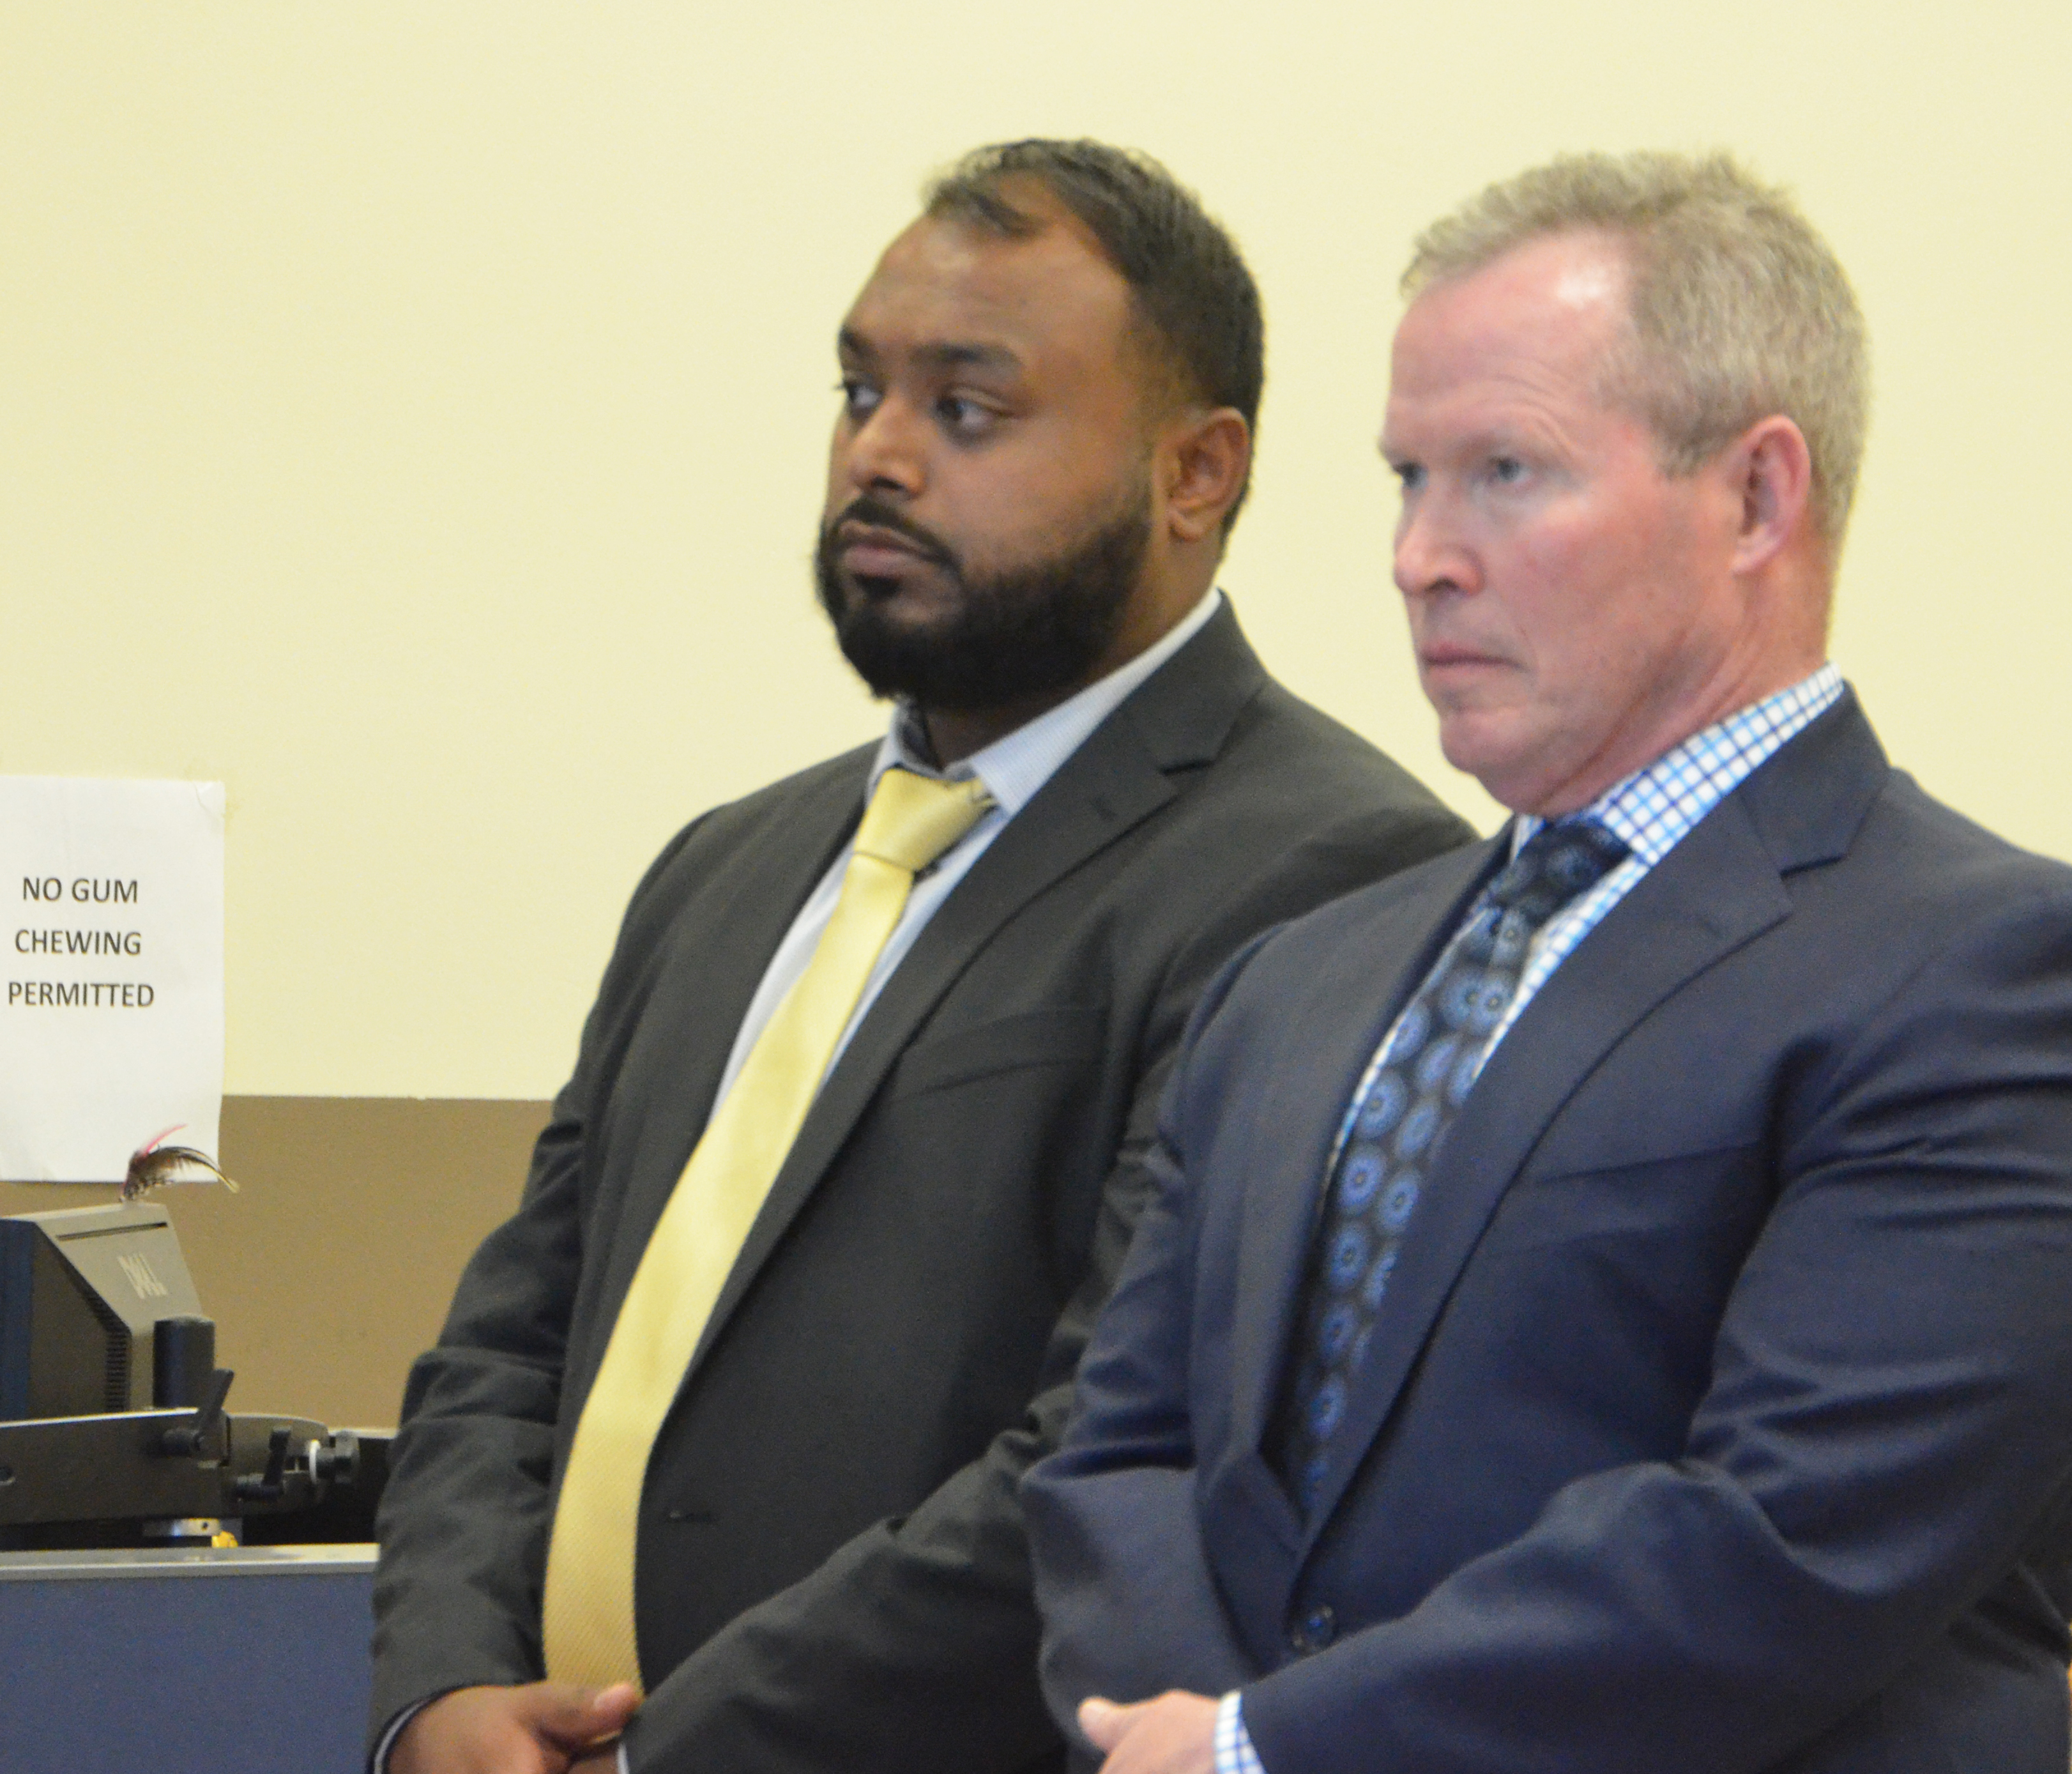 4 cops charged in 2017 fiery crash lose their jobs, but will likely avoid jail time